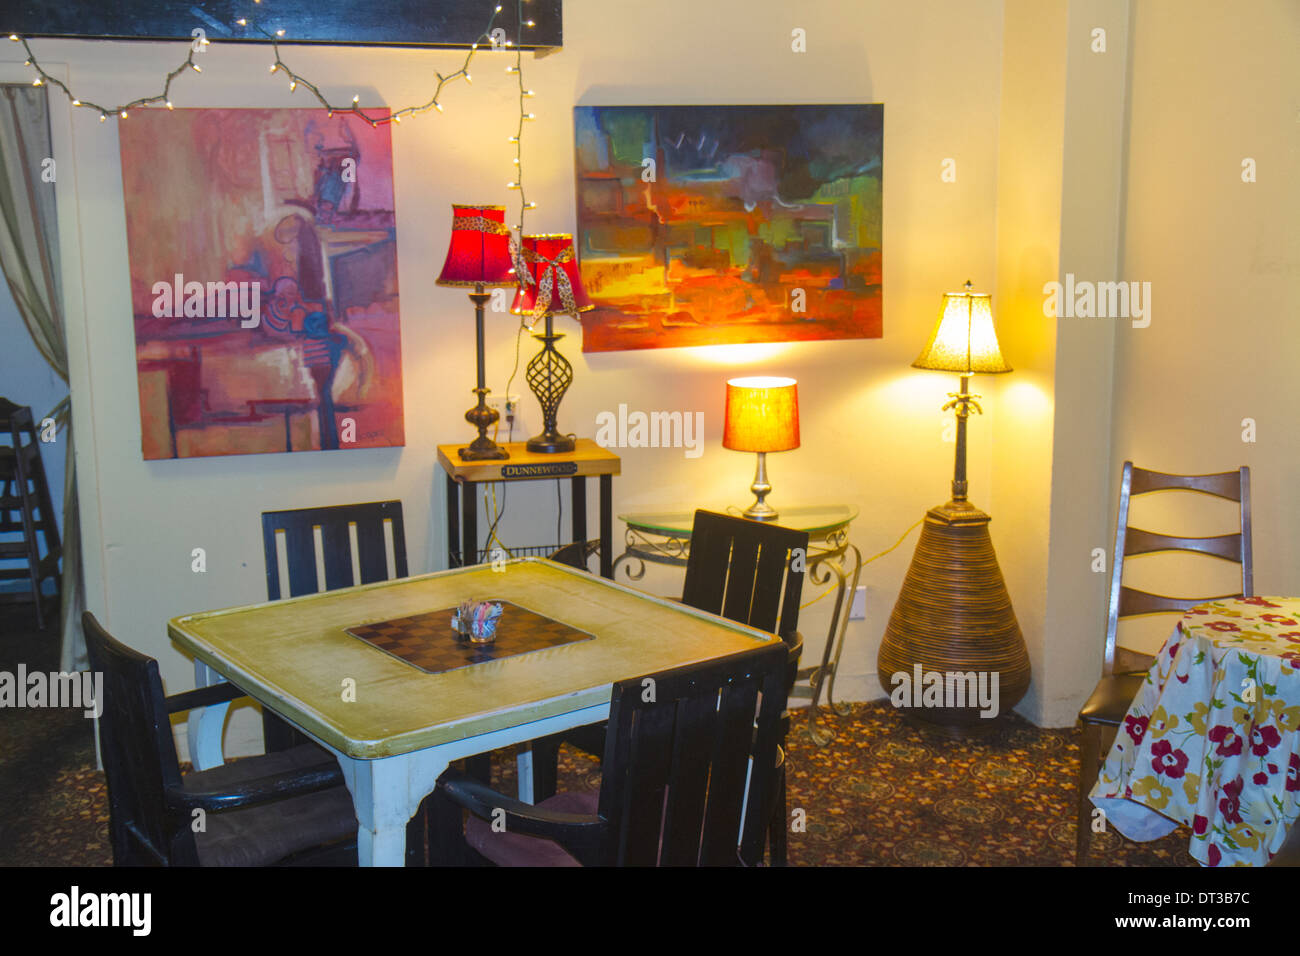 Melbourne Florida 905 Cafe Family Owned Small Business Restaurant Sandwich Shop Dining Table Chairs Eclectic Lamp